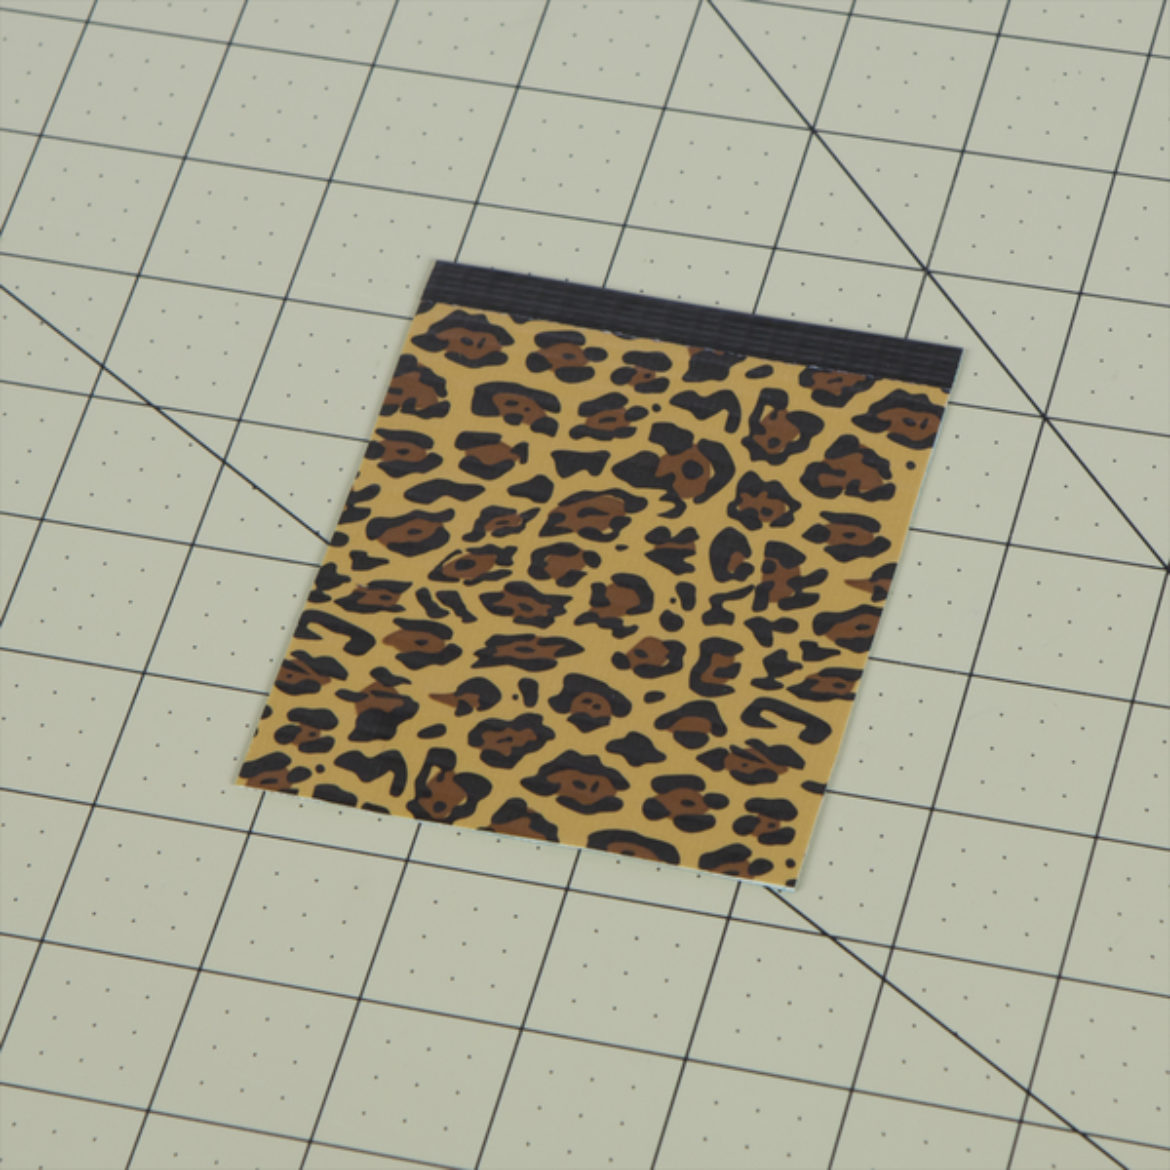 Phone pocket piece from step 4 with a piece of Duck Tape folded over the top to form a border